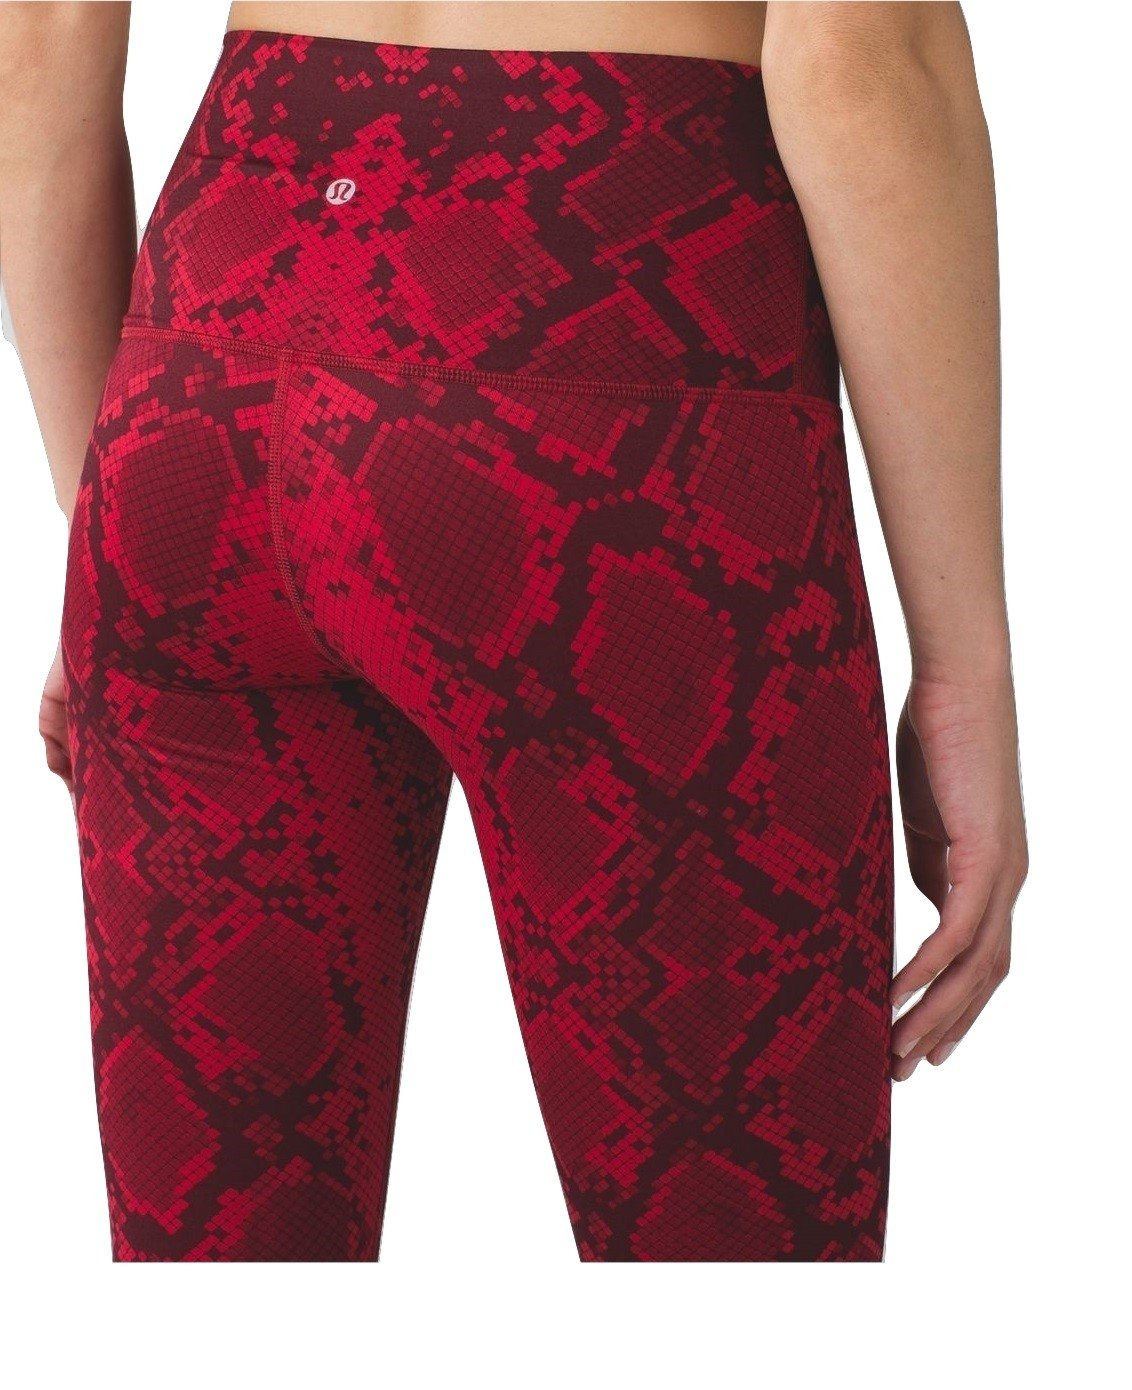 Lululemon High Times Pant Full On Luon 7/8 Yoga Pants (Mini Ziggy Snake Red Tide Cranberry, 8)